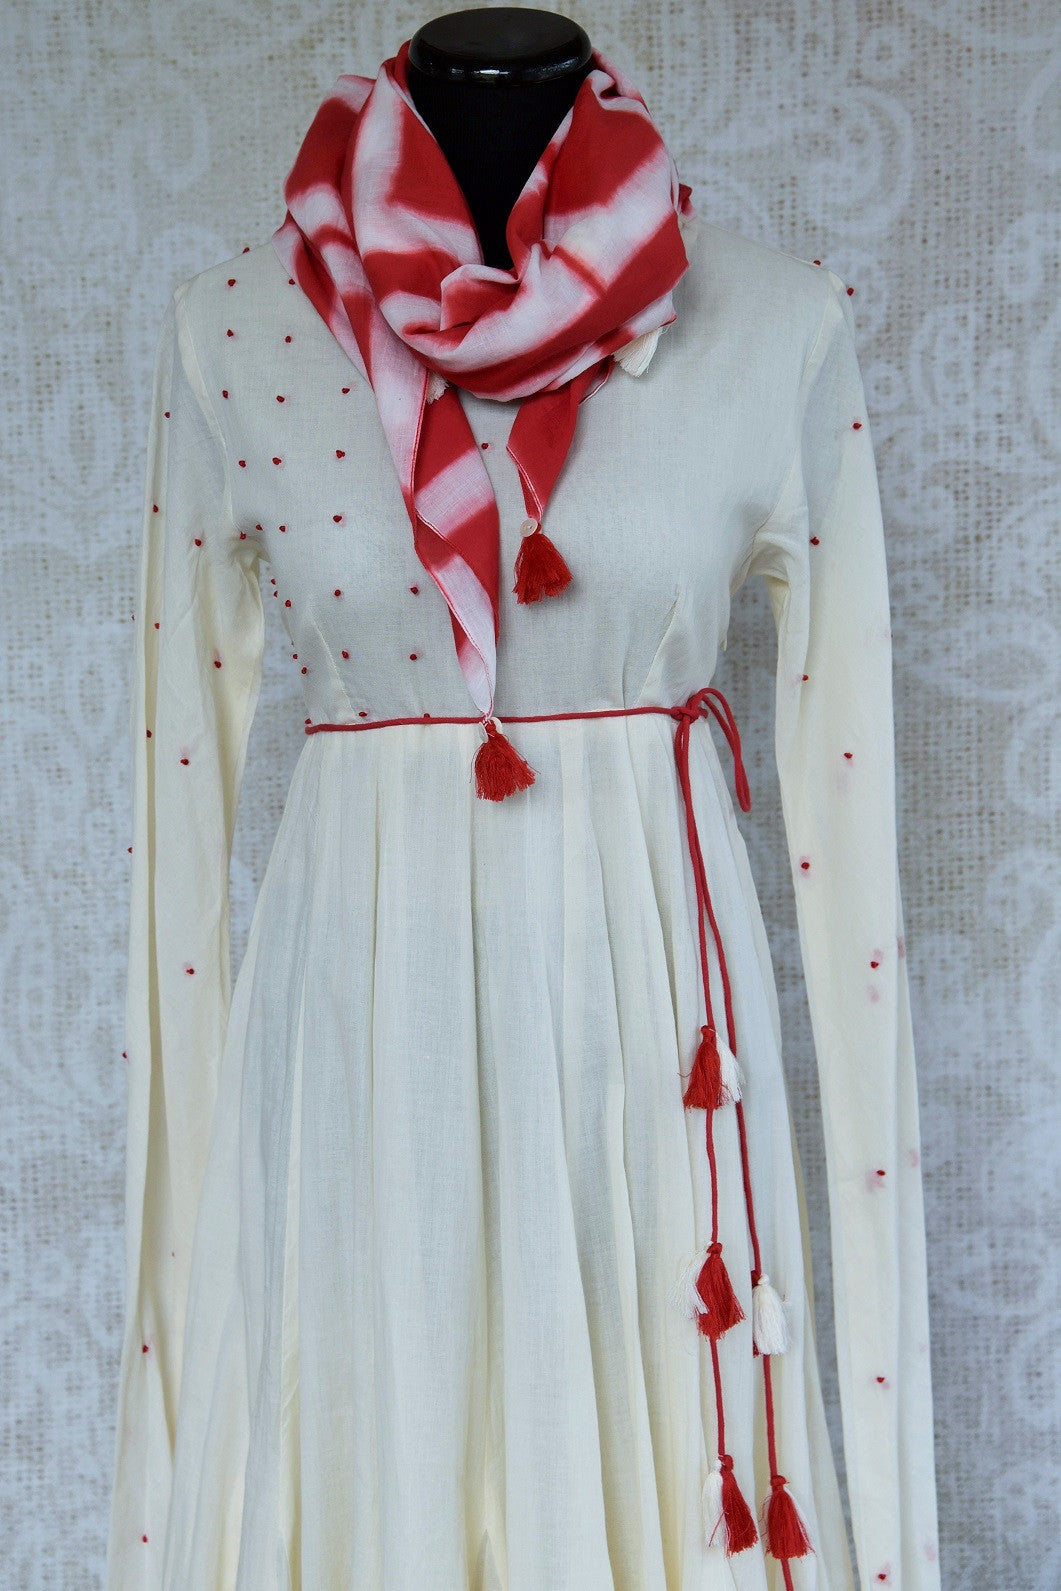 Buy this ethnic Indian Pure Elegance white cotton dress with red dupatta online or from our store in Edison near NJ. It is perfect for any wedding or reception. Red Dupatta.